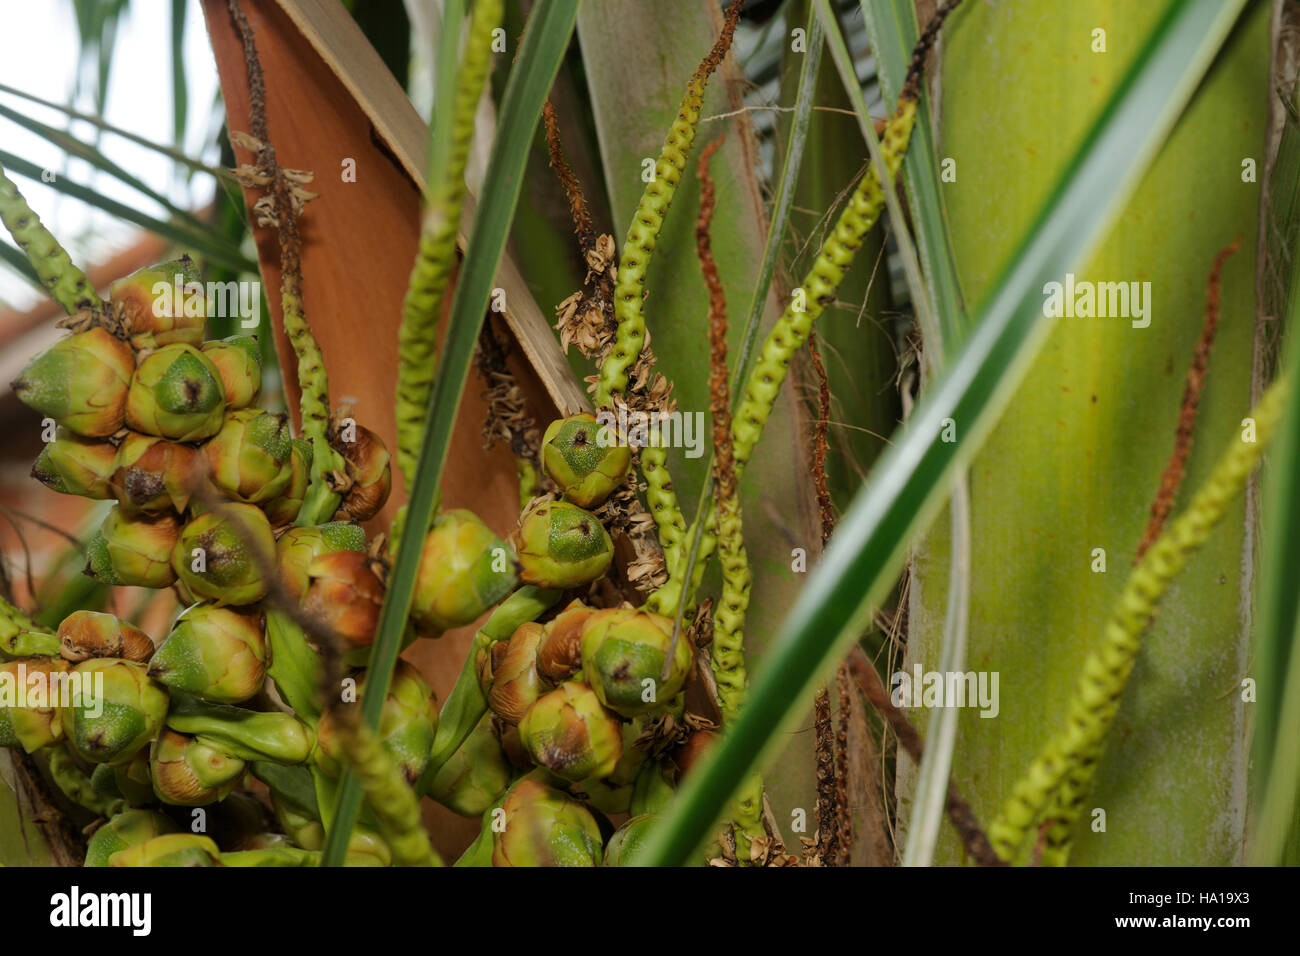 Young coconut buds on a panicle on a palm tree Stock Photo